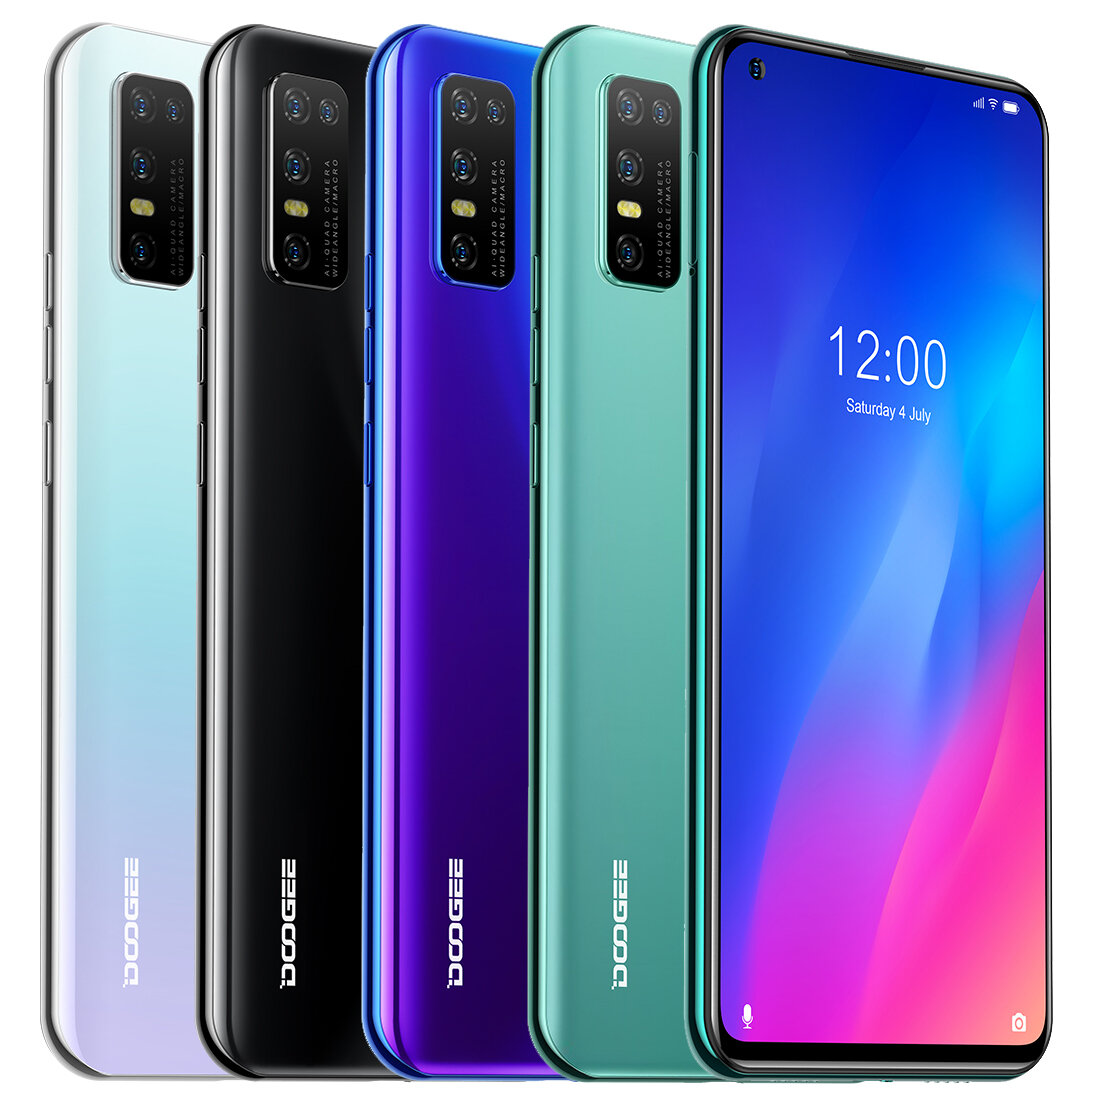 DOOGEE N30 Global Bands 6.55 inch Perforated Screen Android 10.0 4180mAh 16MP AI Quad Rear Camera 4GB 128GB Helio A25 4G Smartphone